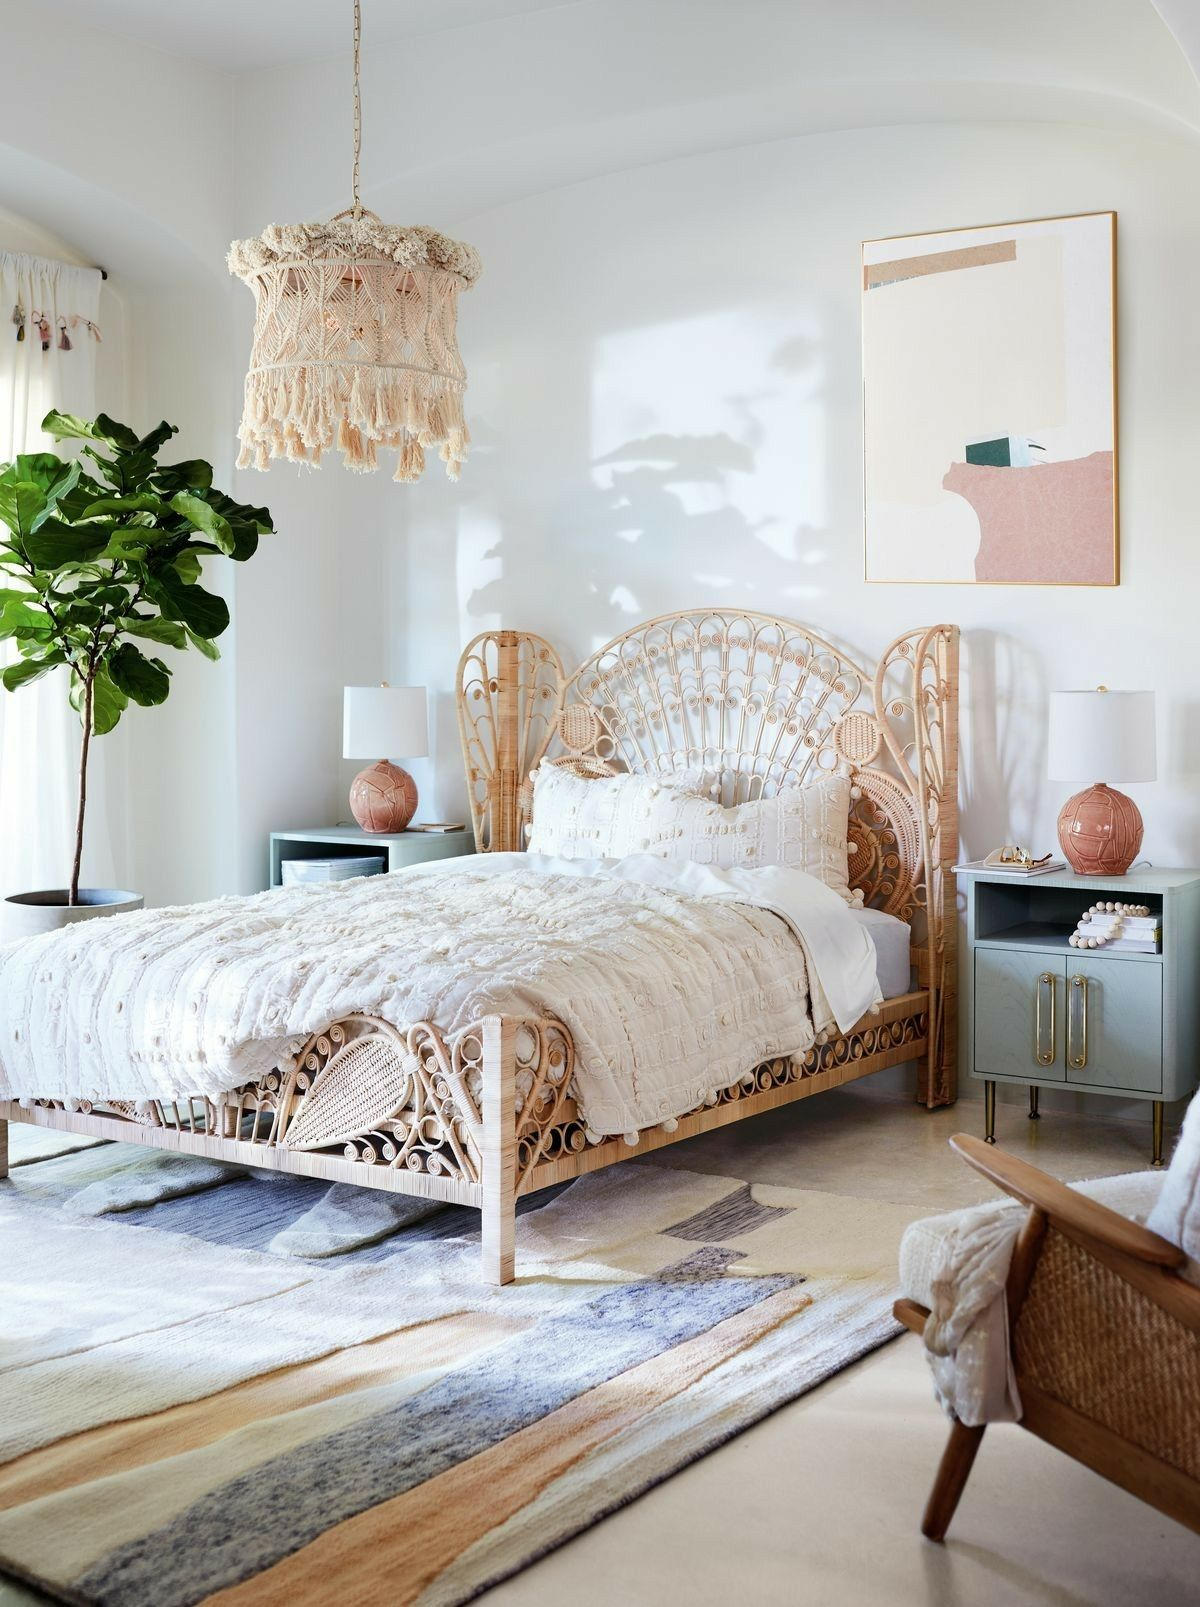 Anthropology Home Design on french design home, caribbean design home, chinese design home, art design home, italian design home, architecture design home, arabic design home,